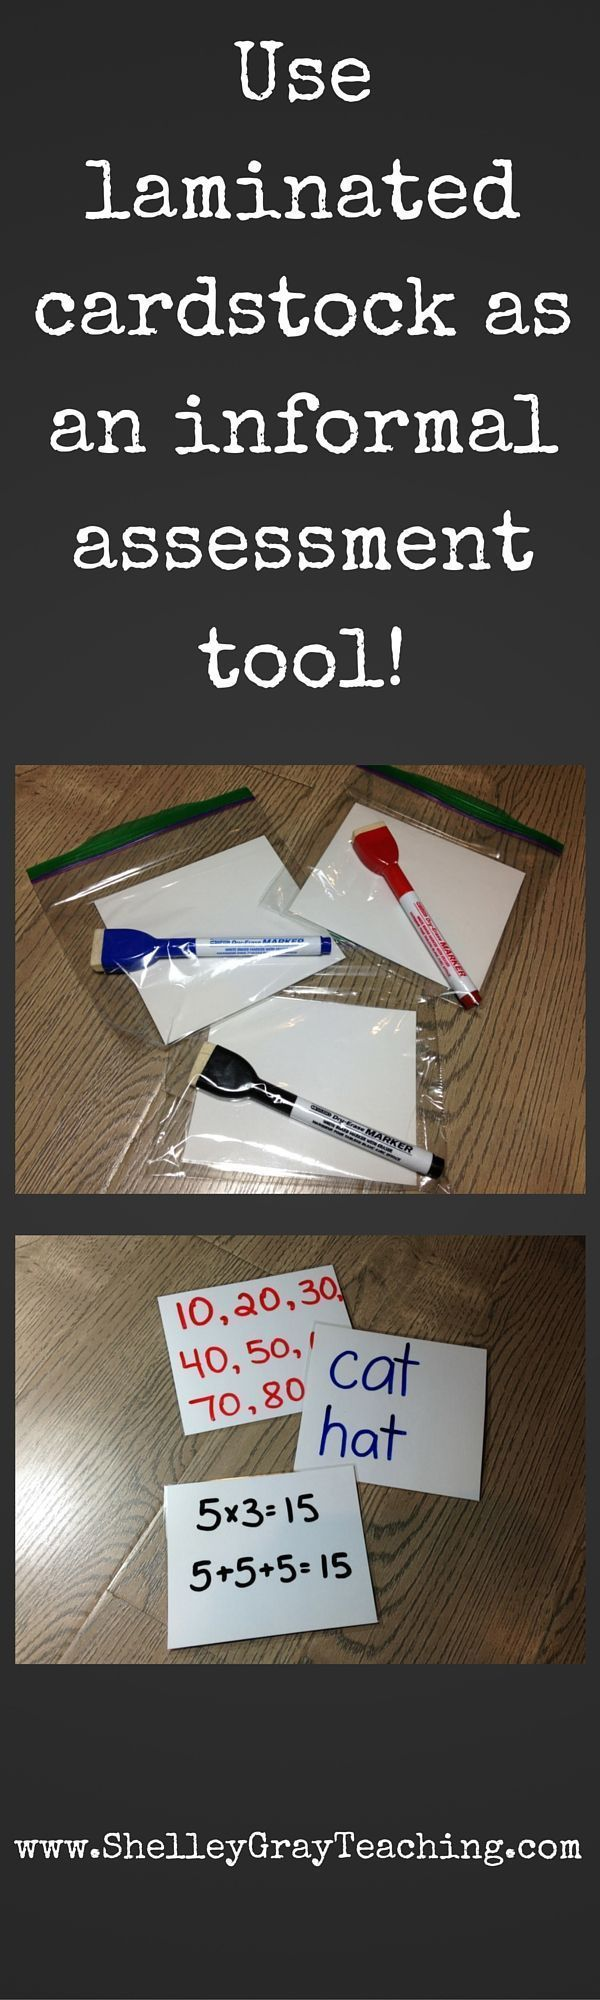 You can make mini-whiteboards out of white card stock and a laminator for a fraction of the cost of the usual individual mini-whiteboards. Use these before, during, and after teaching as an informal assessment tool. These work great for whole class assessment (to get a quick idea of who understands and who needs more time) or for small group assessment.